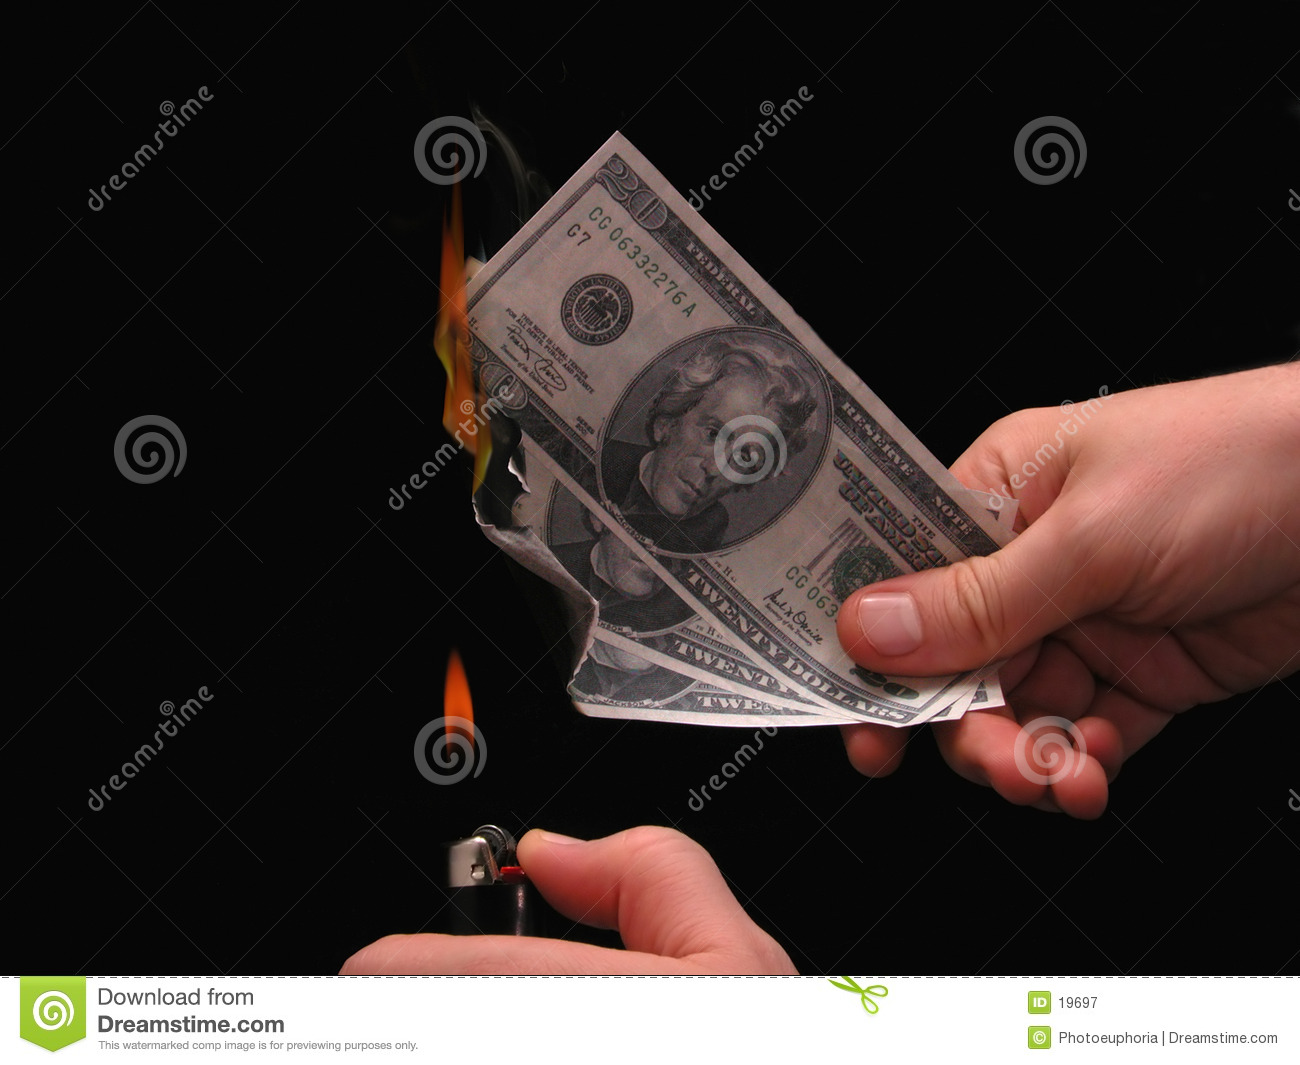 Metaphor: Money to Burn